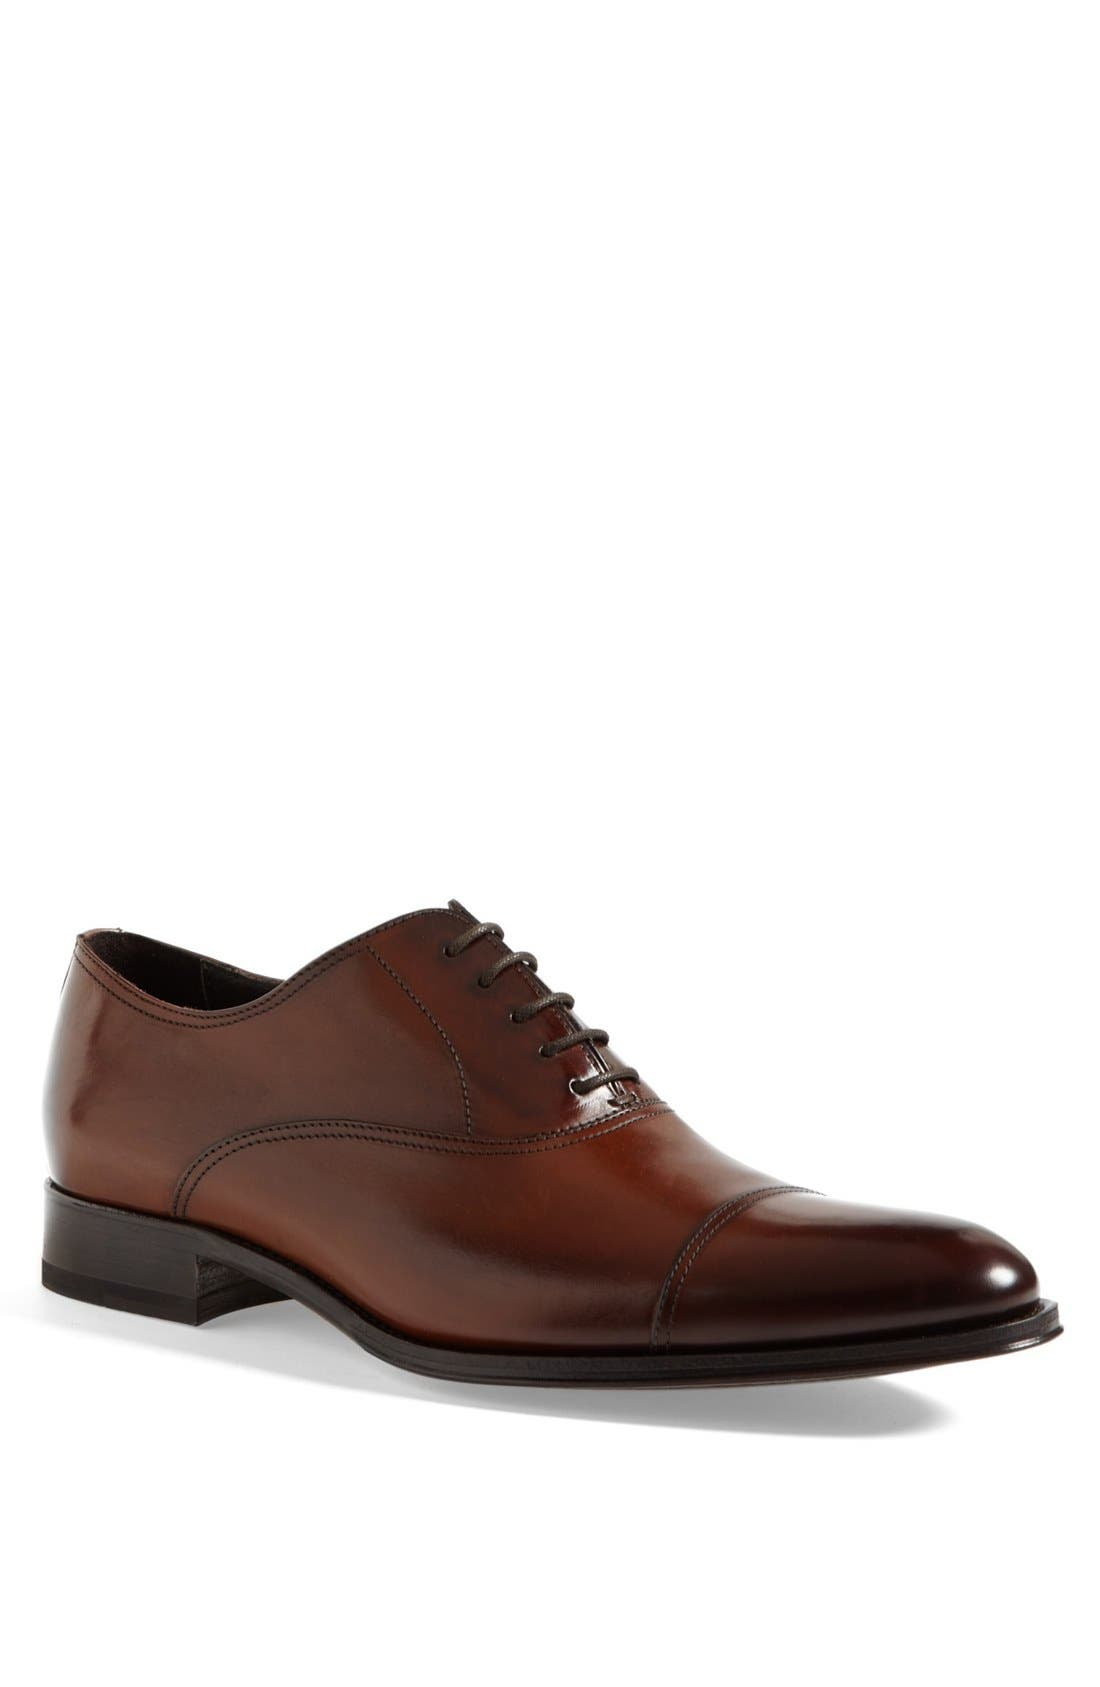 To Boot New York Brandon Cap Toe Oxford, Brown